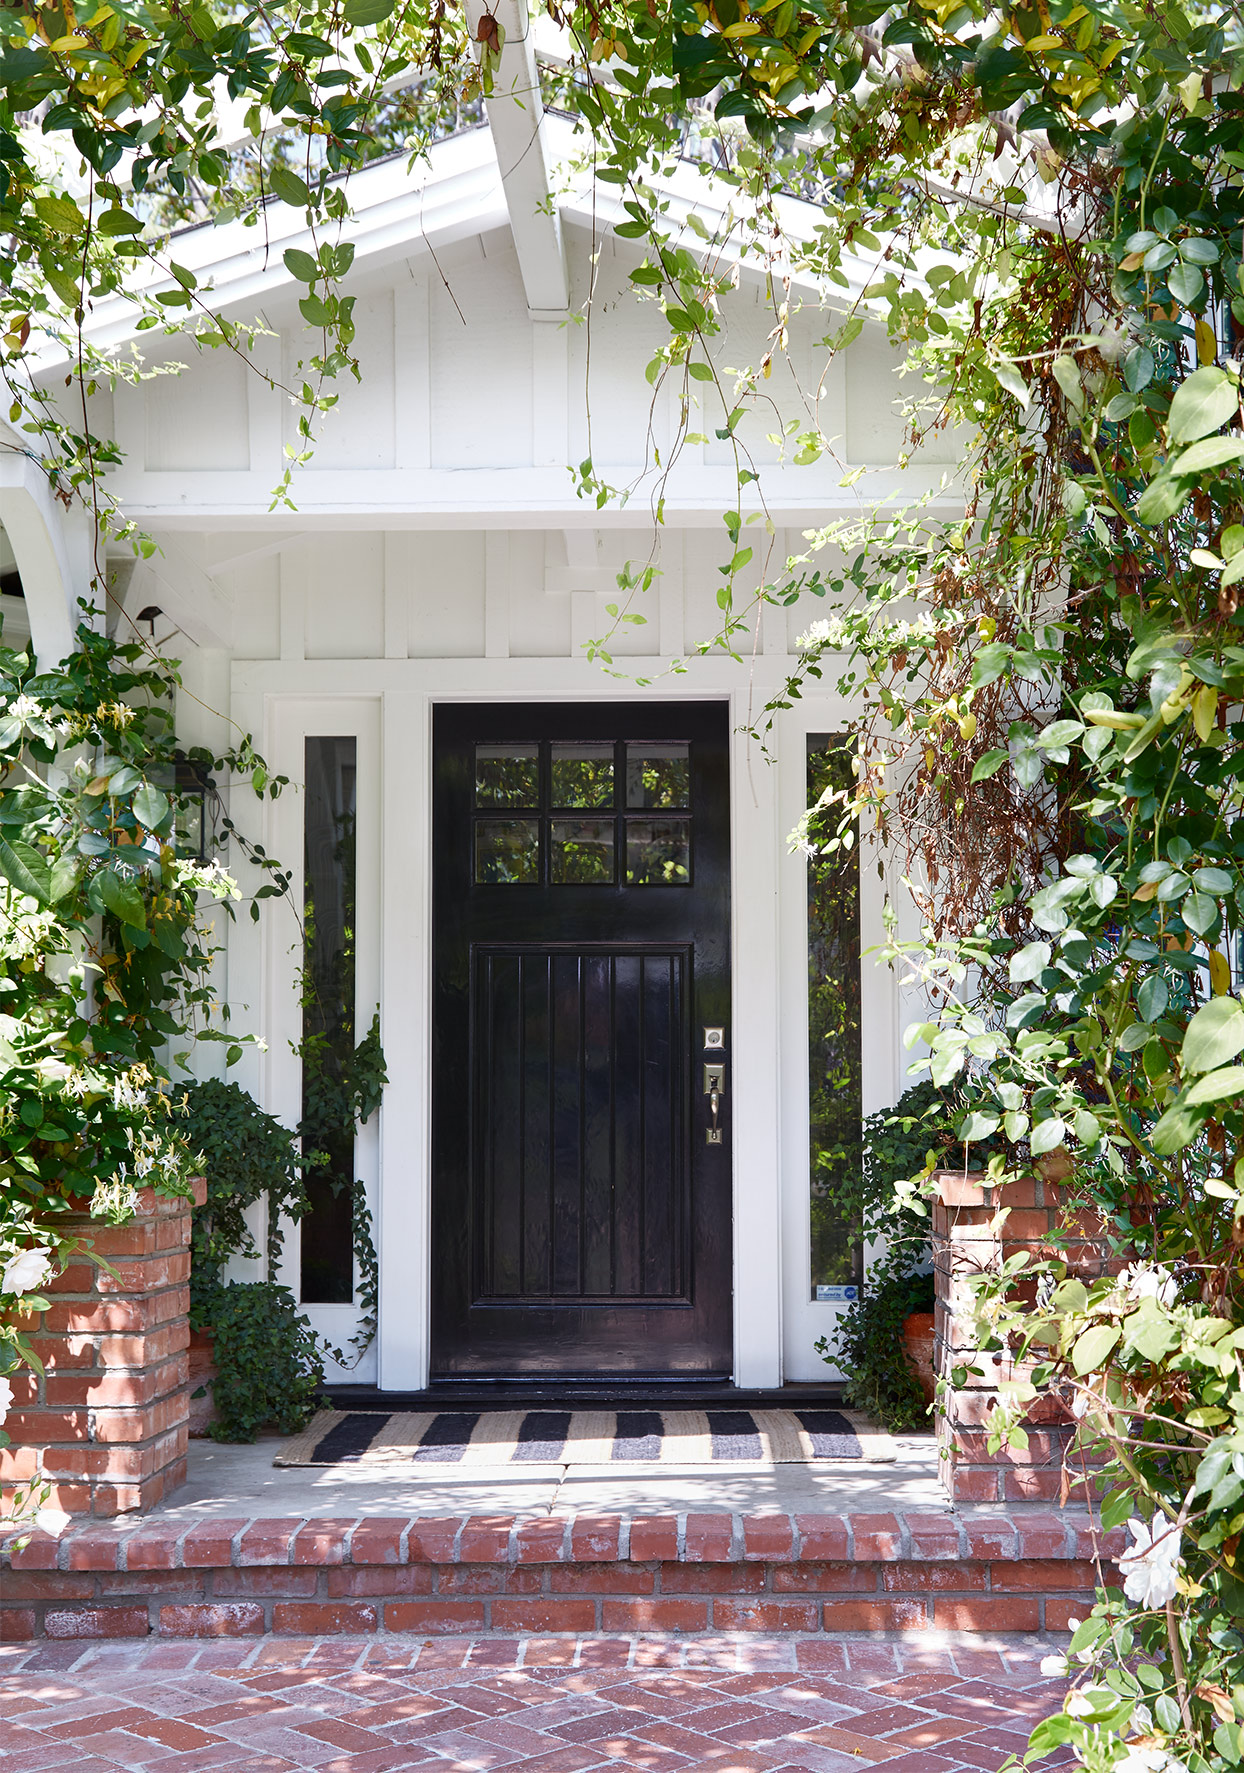 black front door on white house with brick entry way